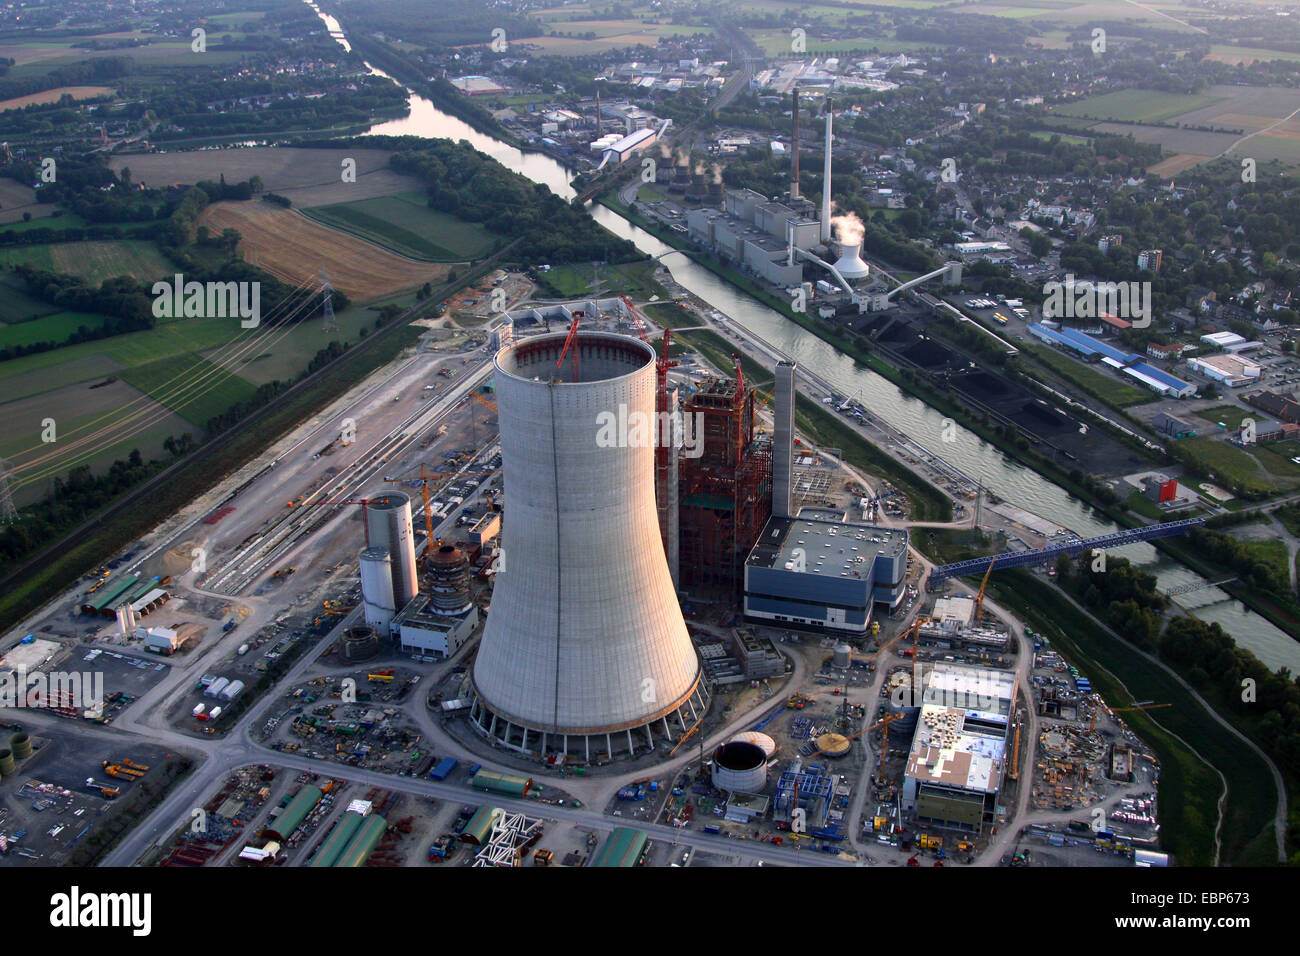 legally stopped new building of a coal-burning power plant in Datteln, Germany, North Rhine-Westphalia, Ruhr Area, - Stock Image